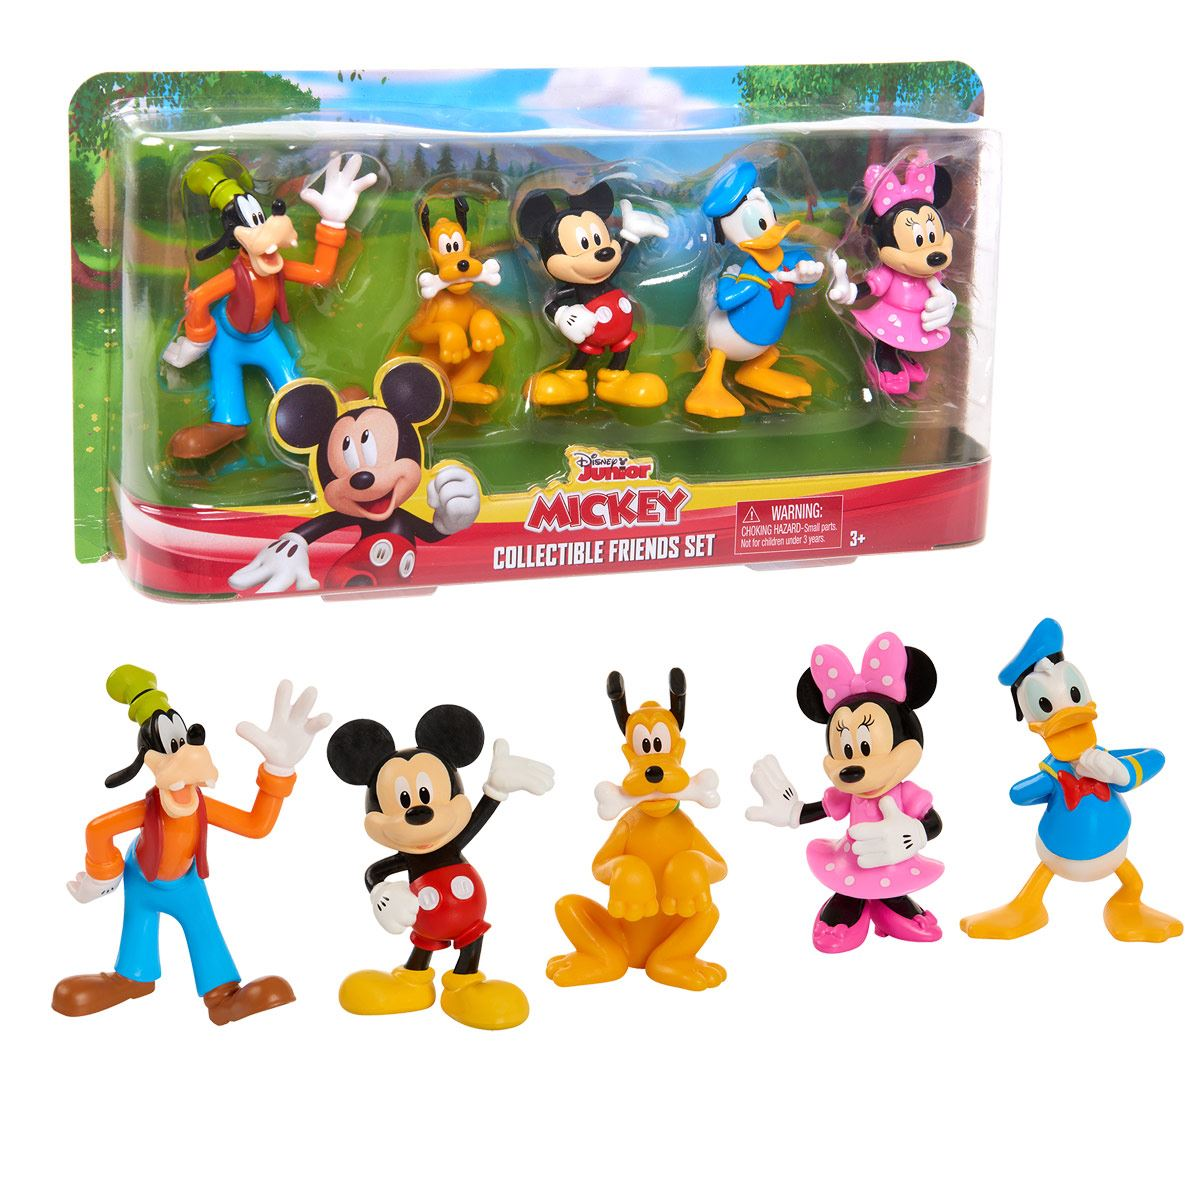 Mickey Collectible Friends Figure Set